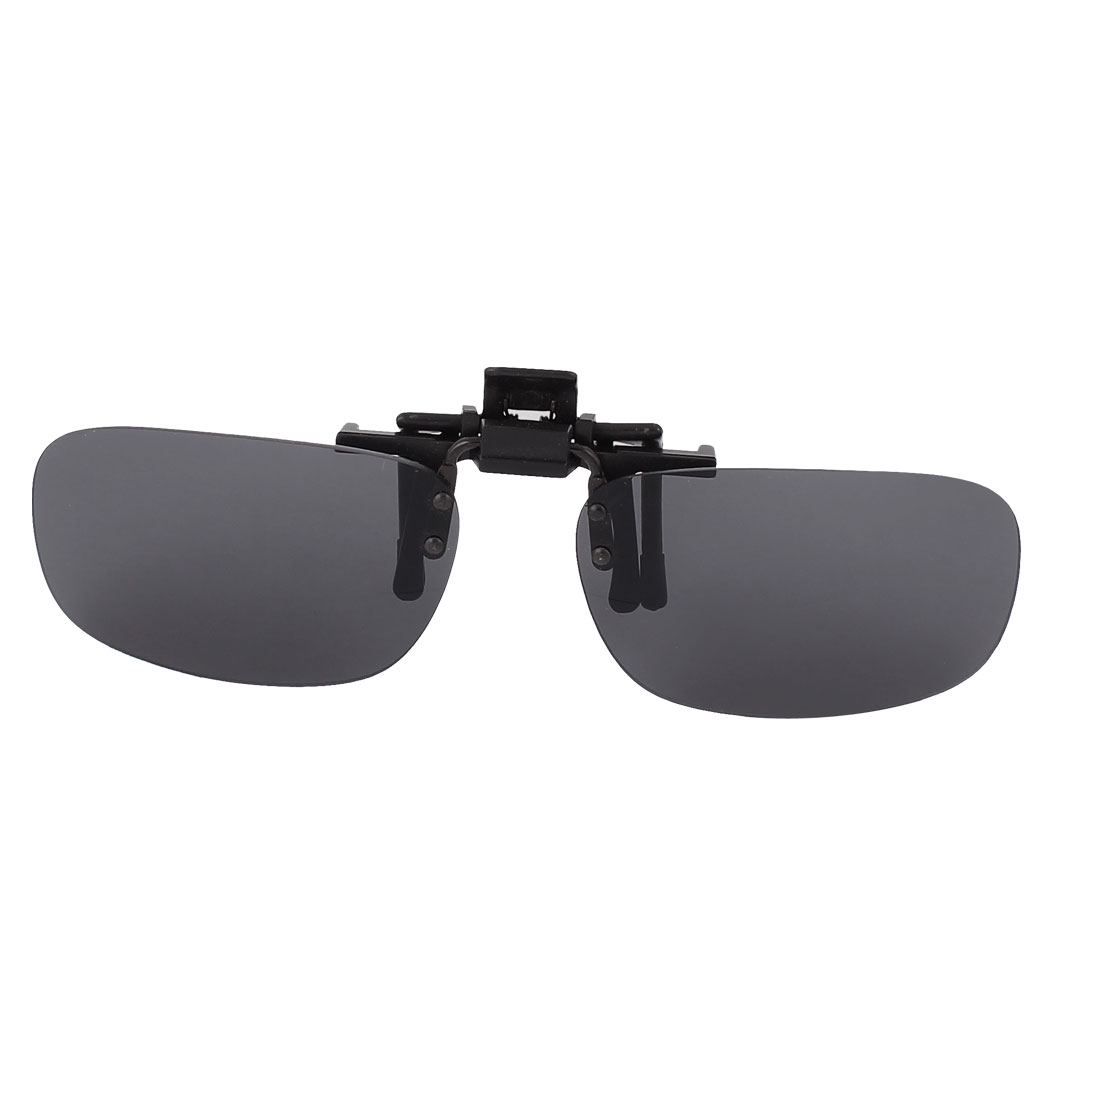 Black Lens Glare Block Lend Clip On Flip Up Sunglasses For Glasses Driving